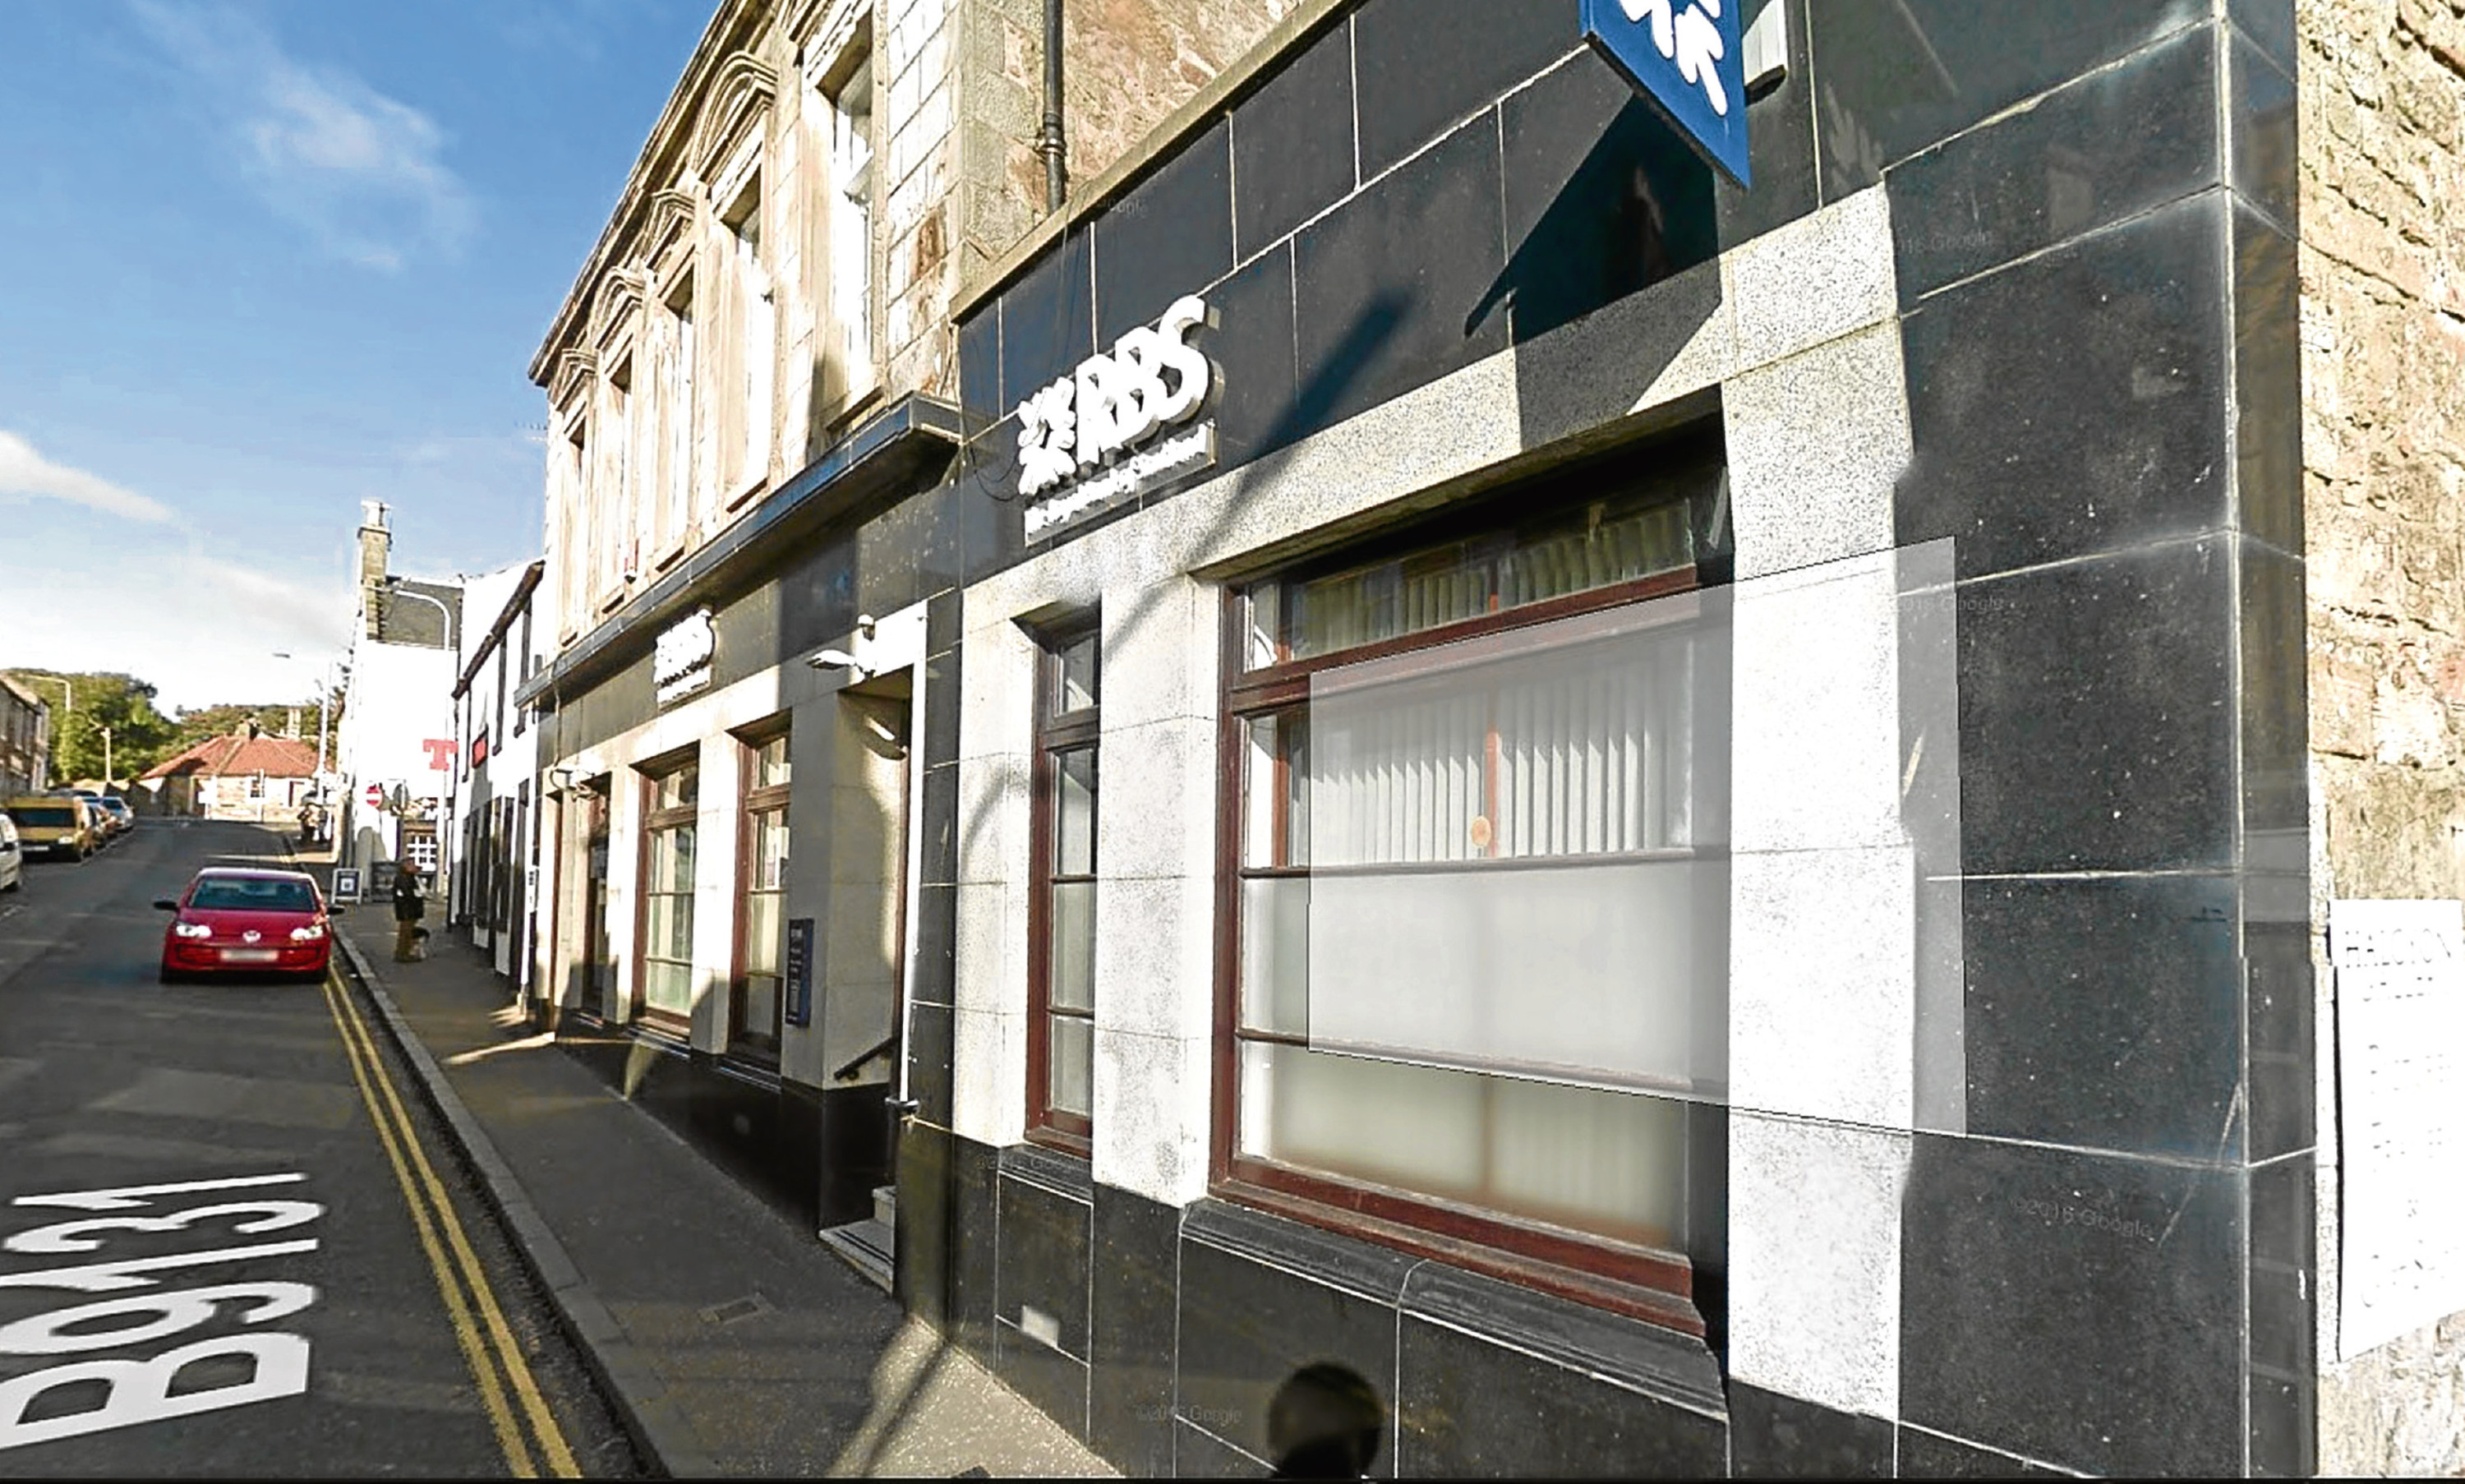 The Royal Bank of Scotland branch in Anstruther is facing closure.